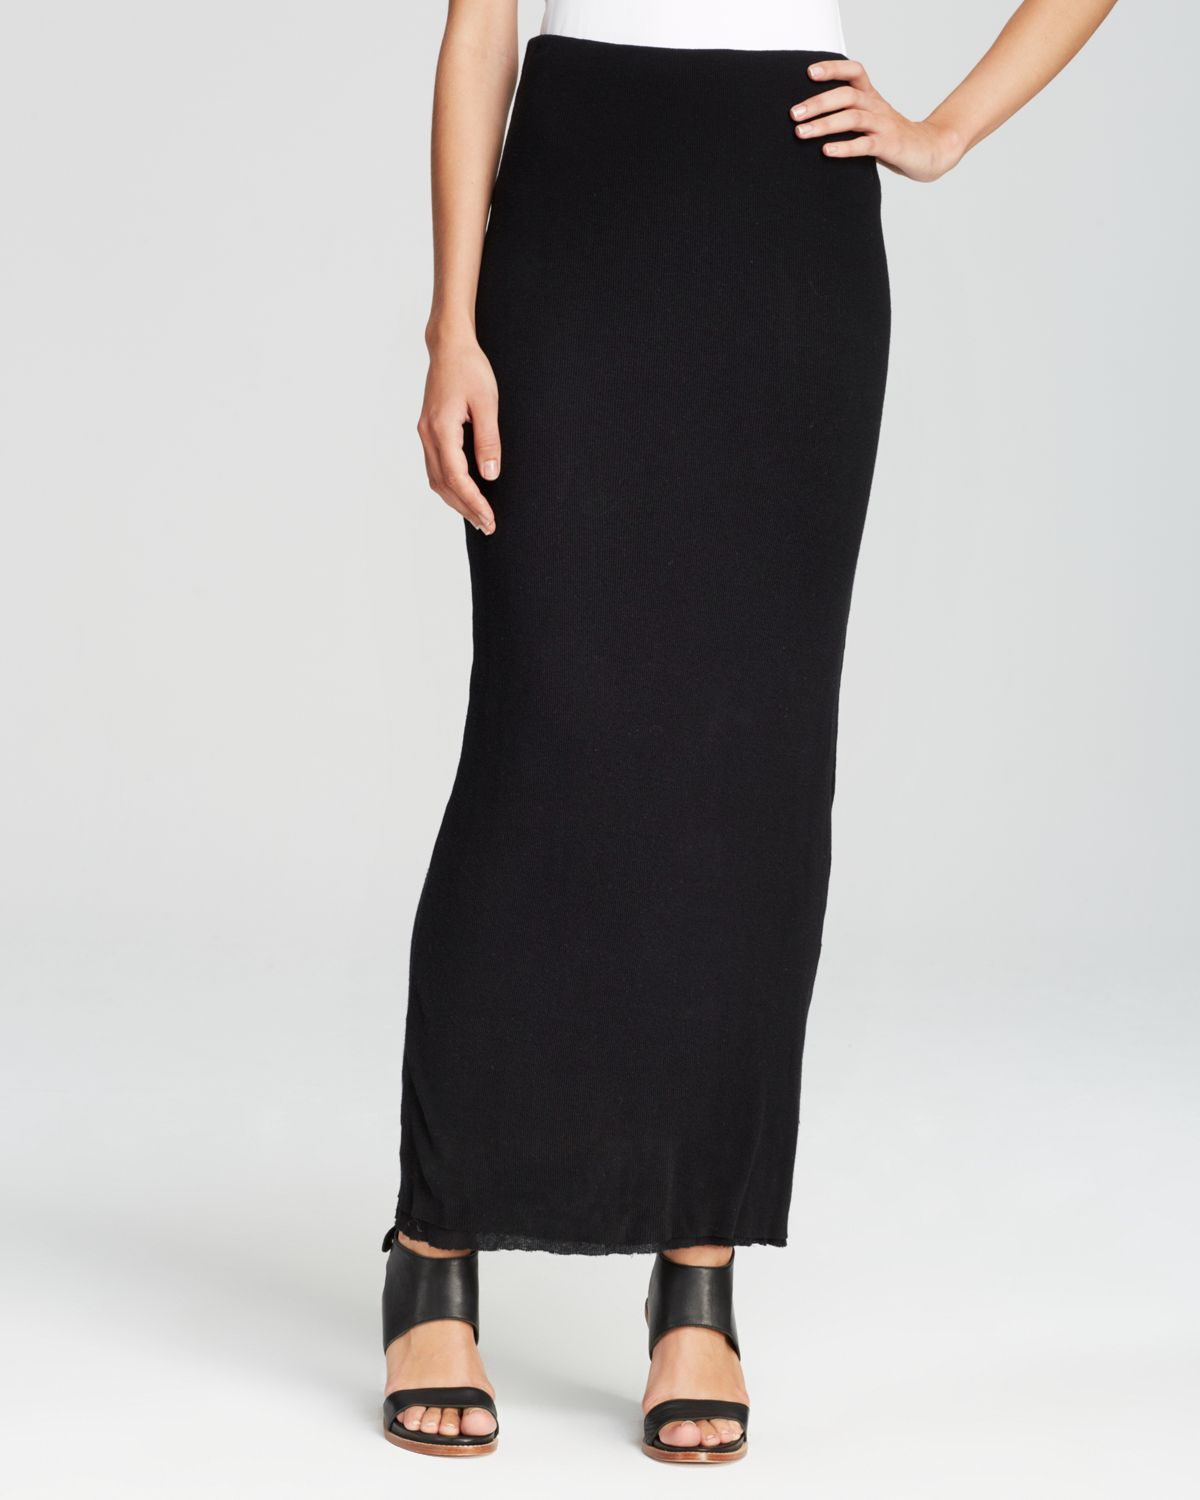 Black Pencil Maxi Skirt